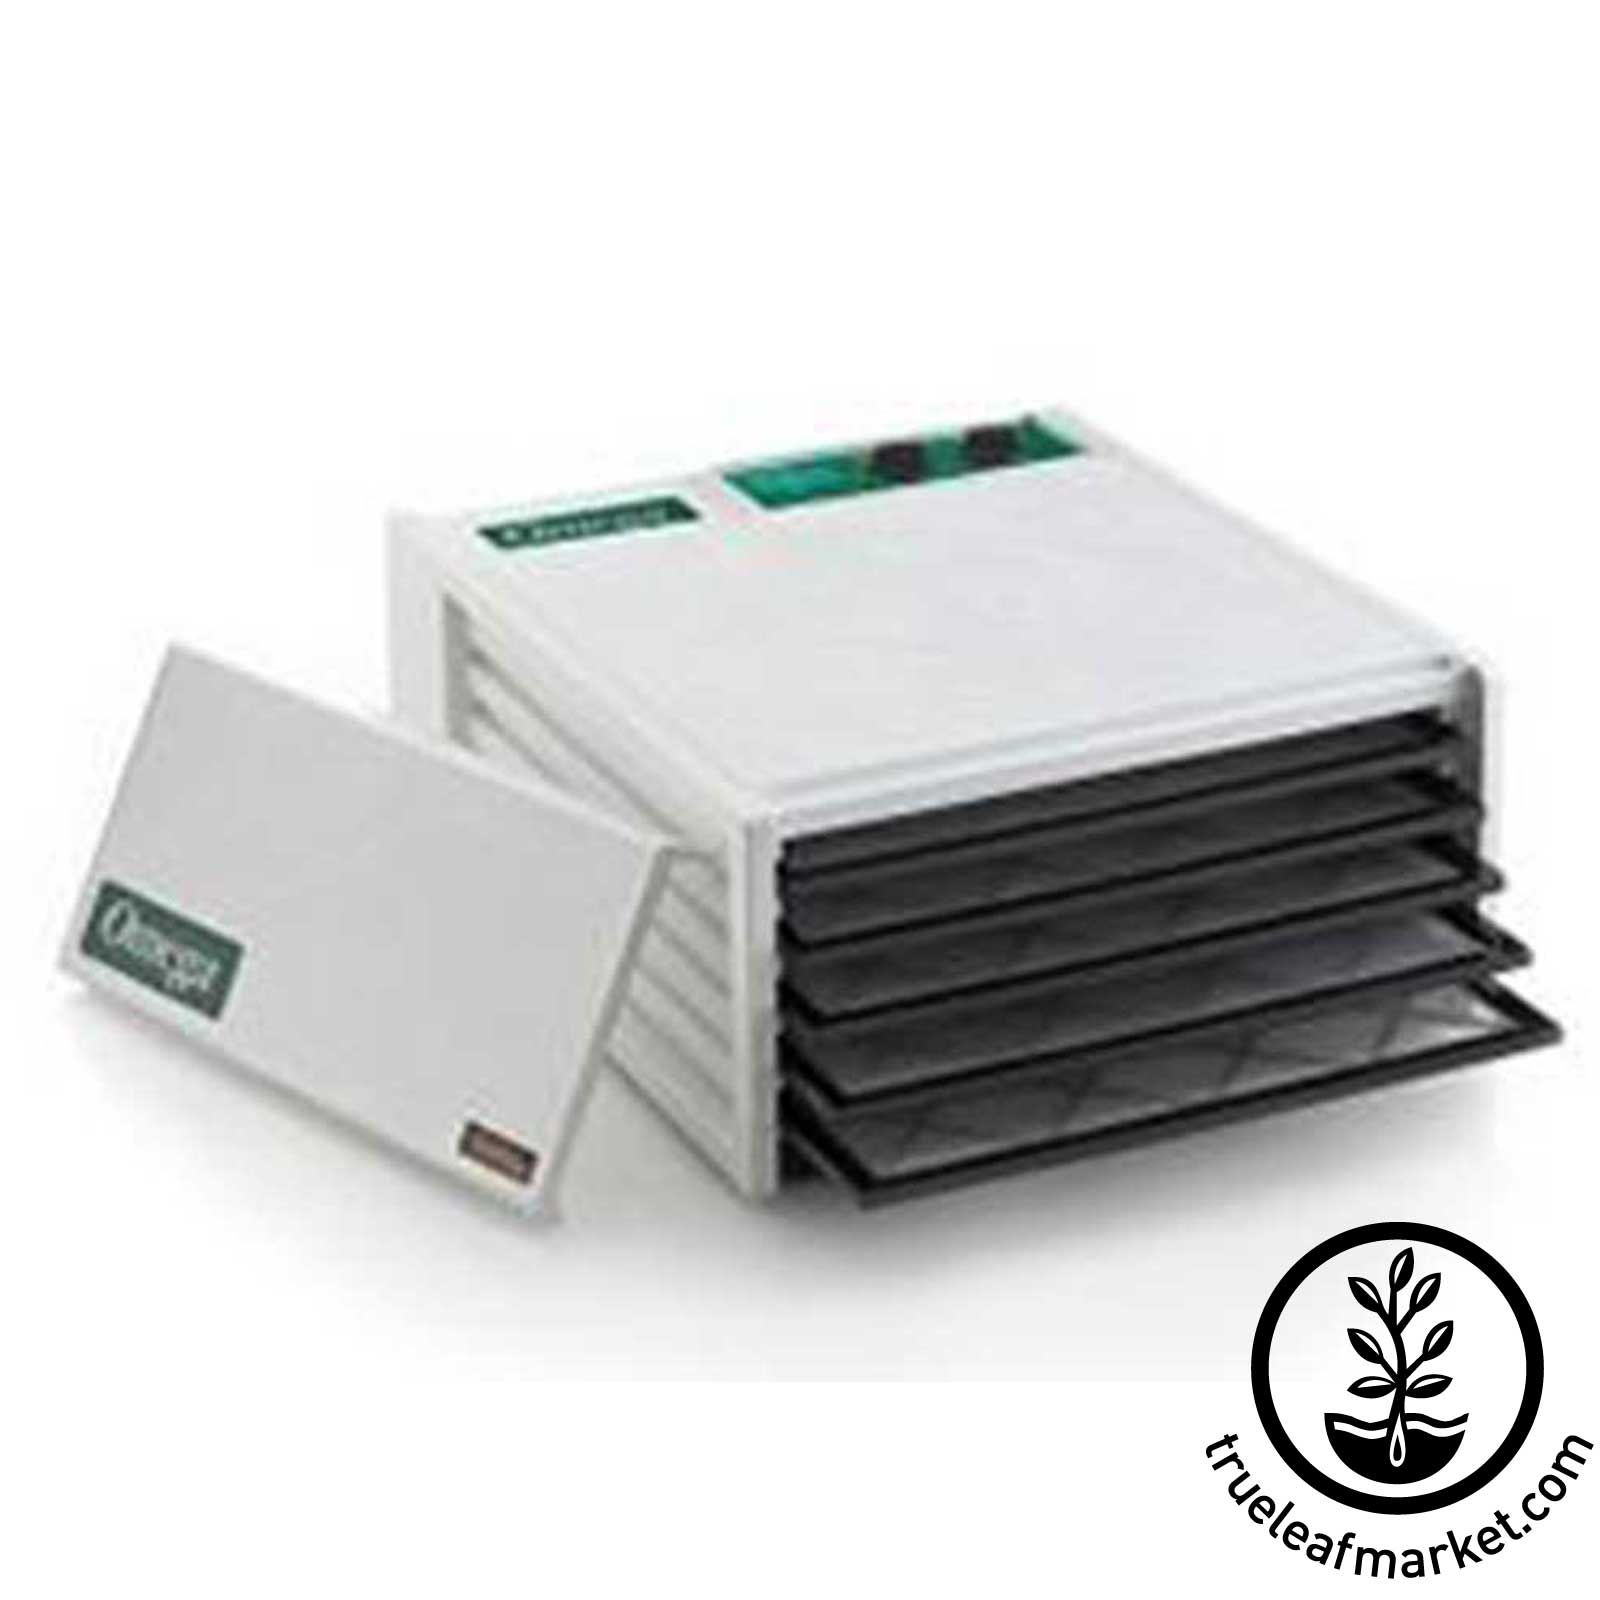 Omega Electric Food & Herb Dehydrator Omega Dehydrator, Model D5050TW, food dehydrator, Model D9090TW, food dryer, herb dryer